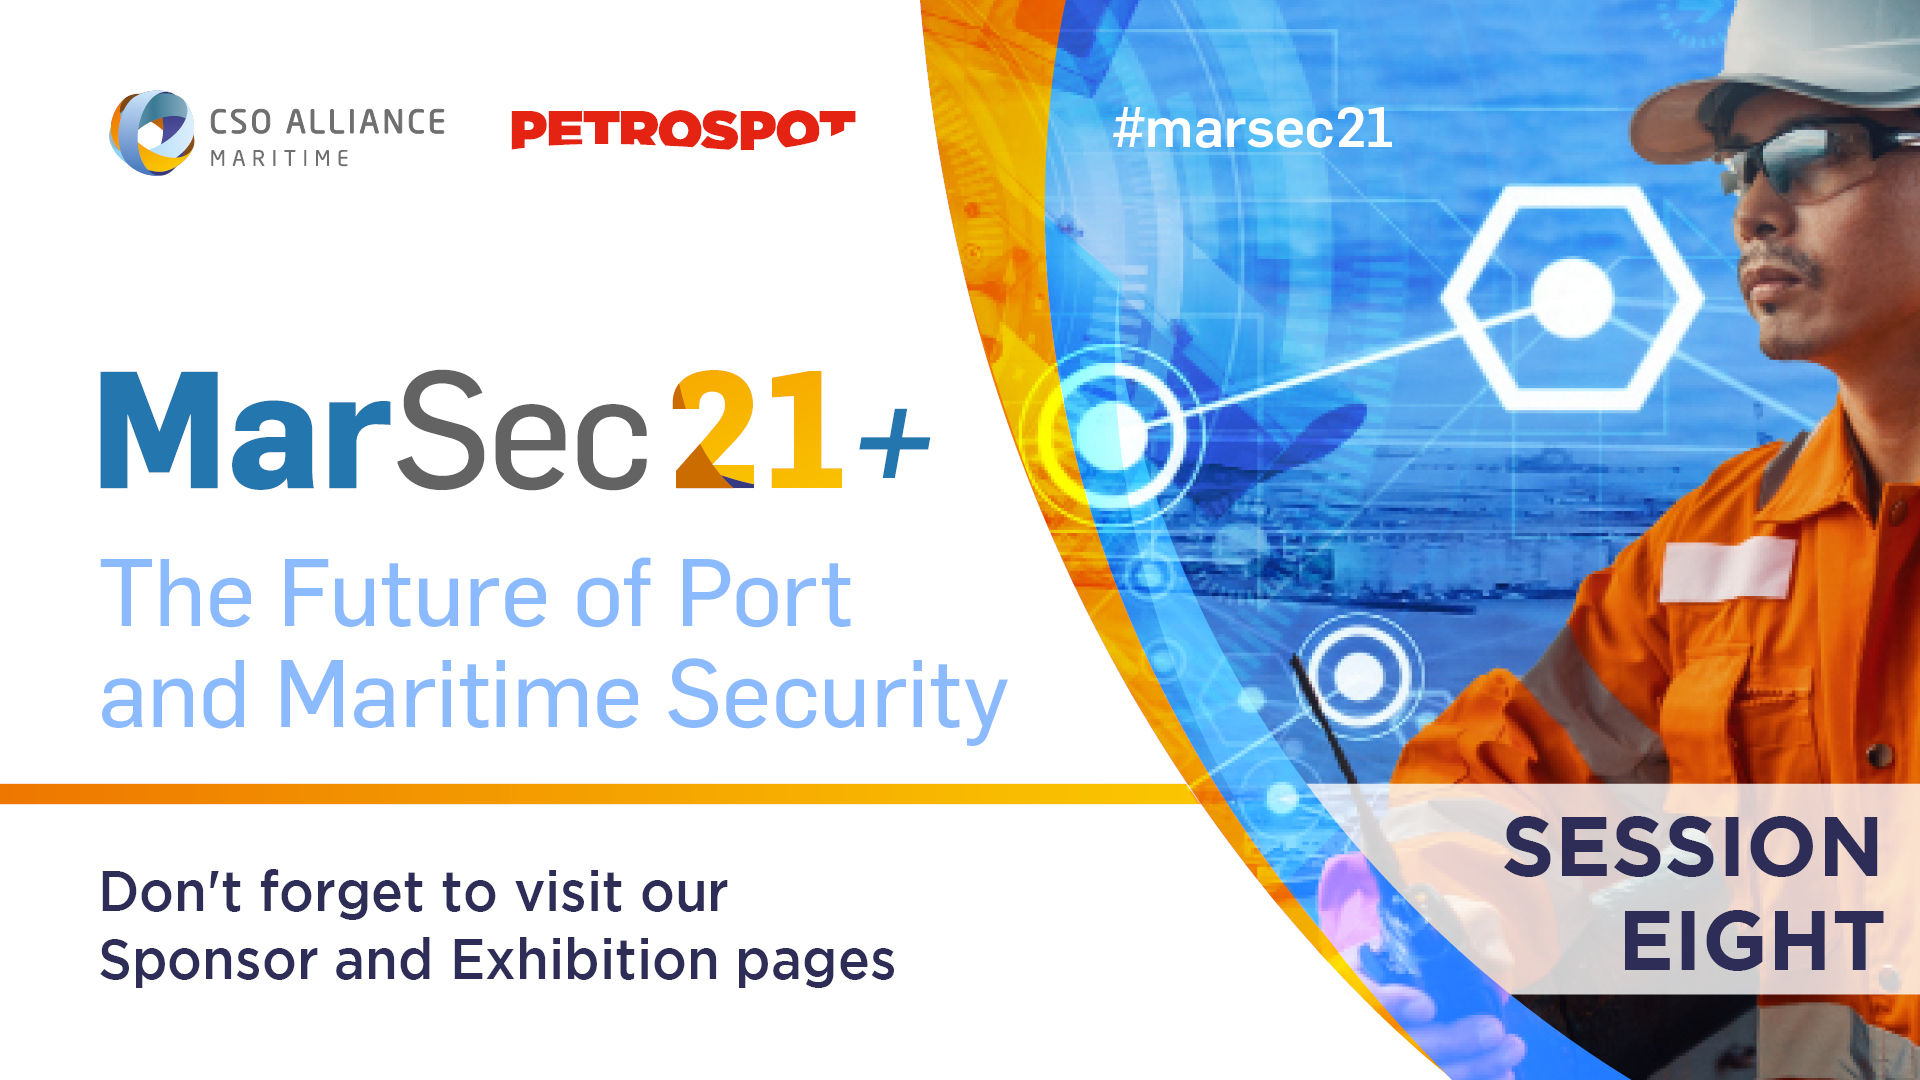 MarSec 21+ Session 8: Electronic Interference, Jamming and Spoofing in Maritime Operations